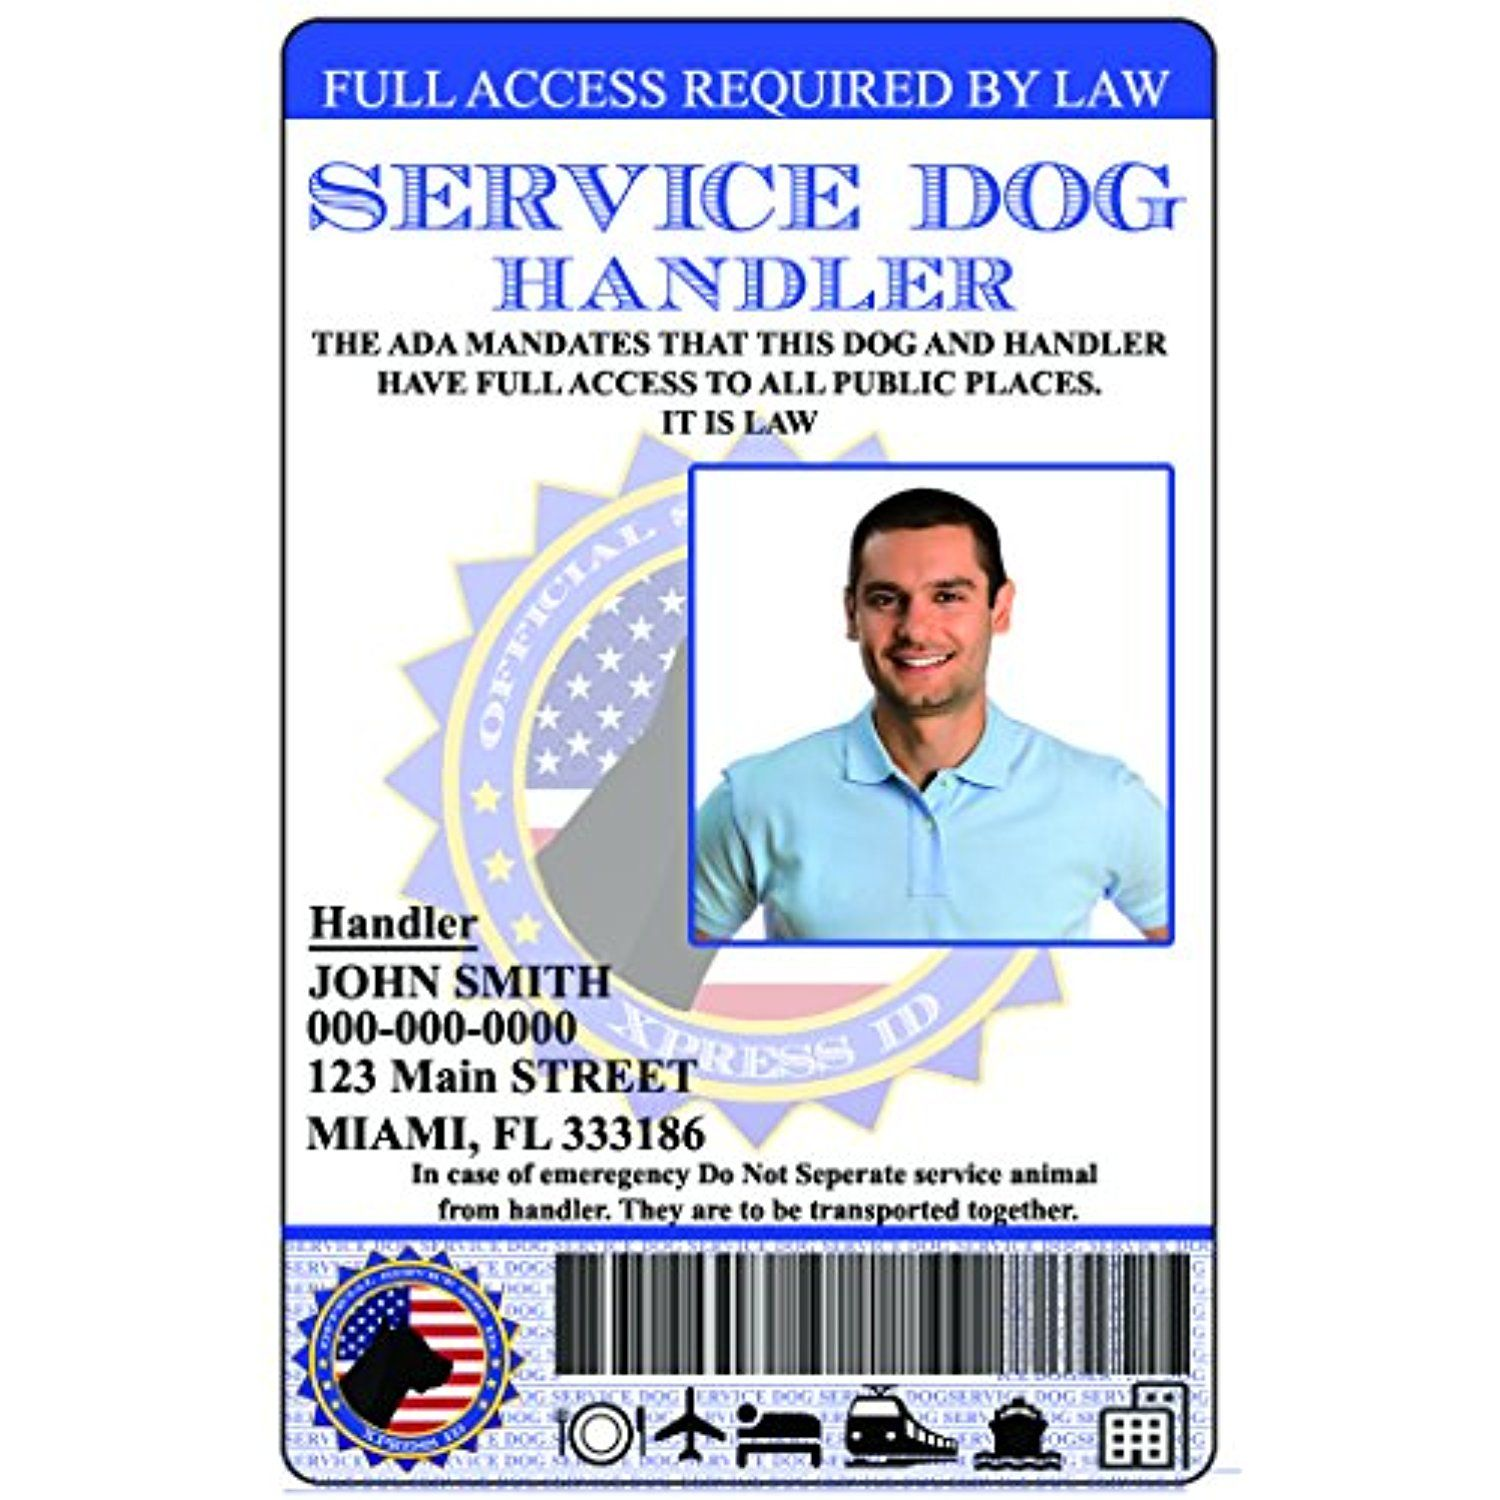 Holographic Service Dog Handler ID (Custom) Includes